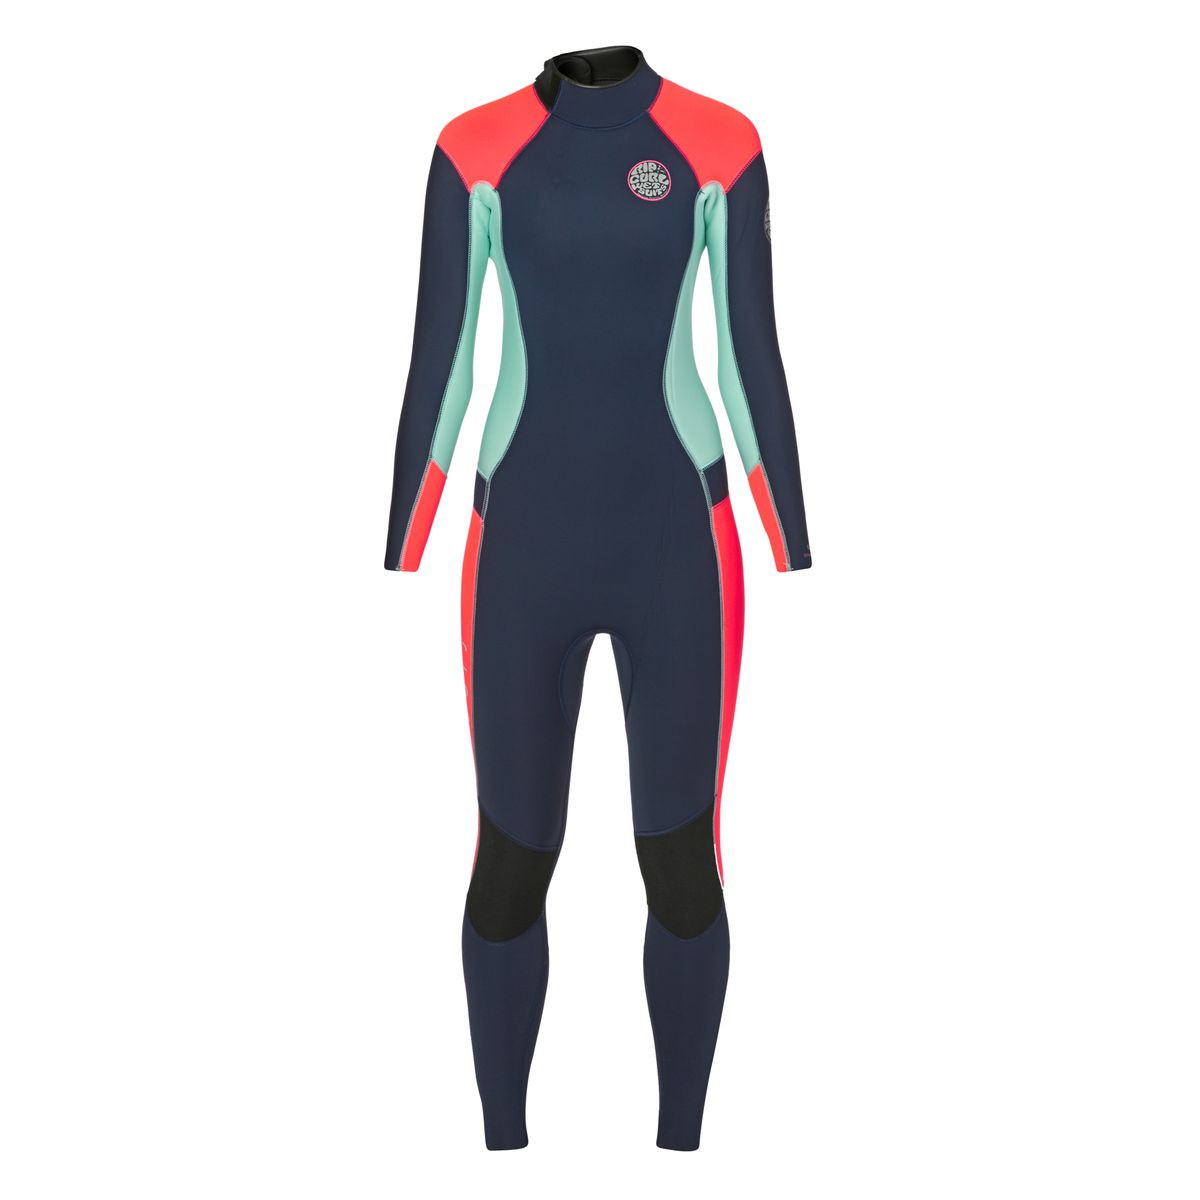 Rip Curl Womens Dawn Patrol 4/3mm 2017 Back Zip Wetsuit - Navy